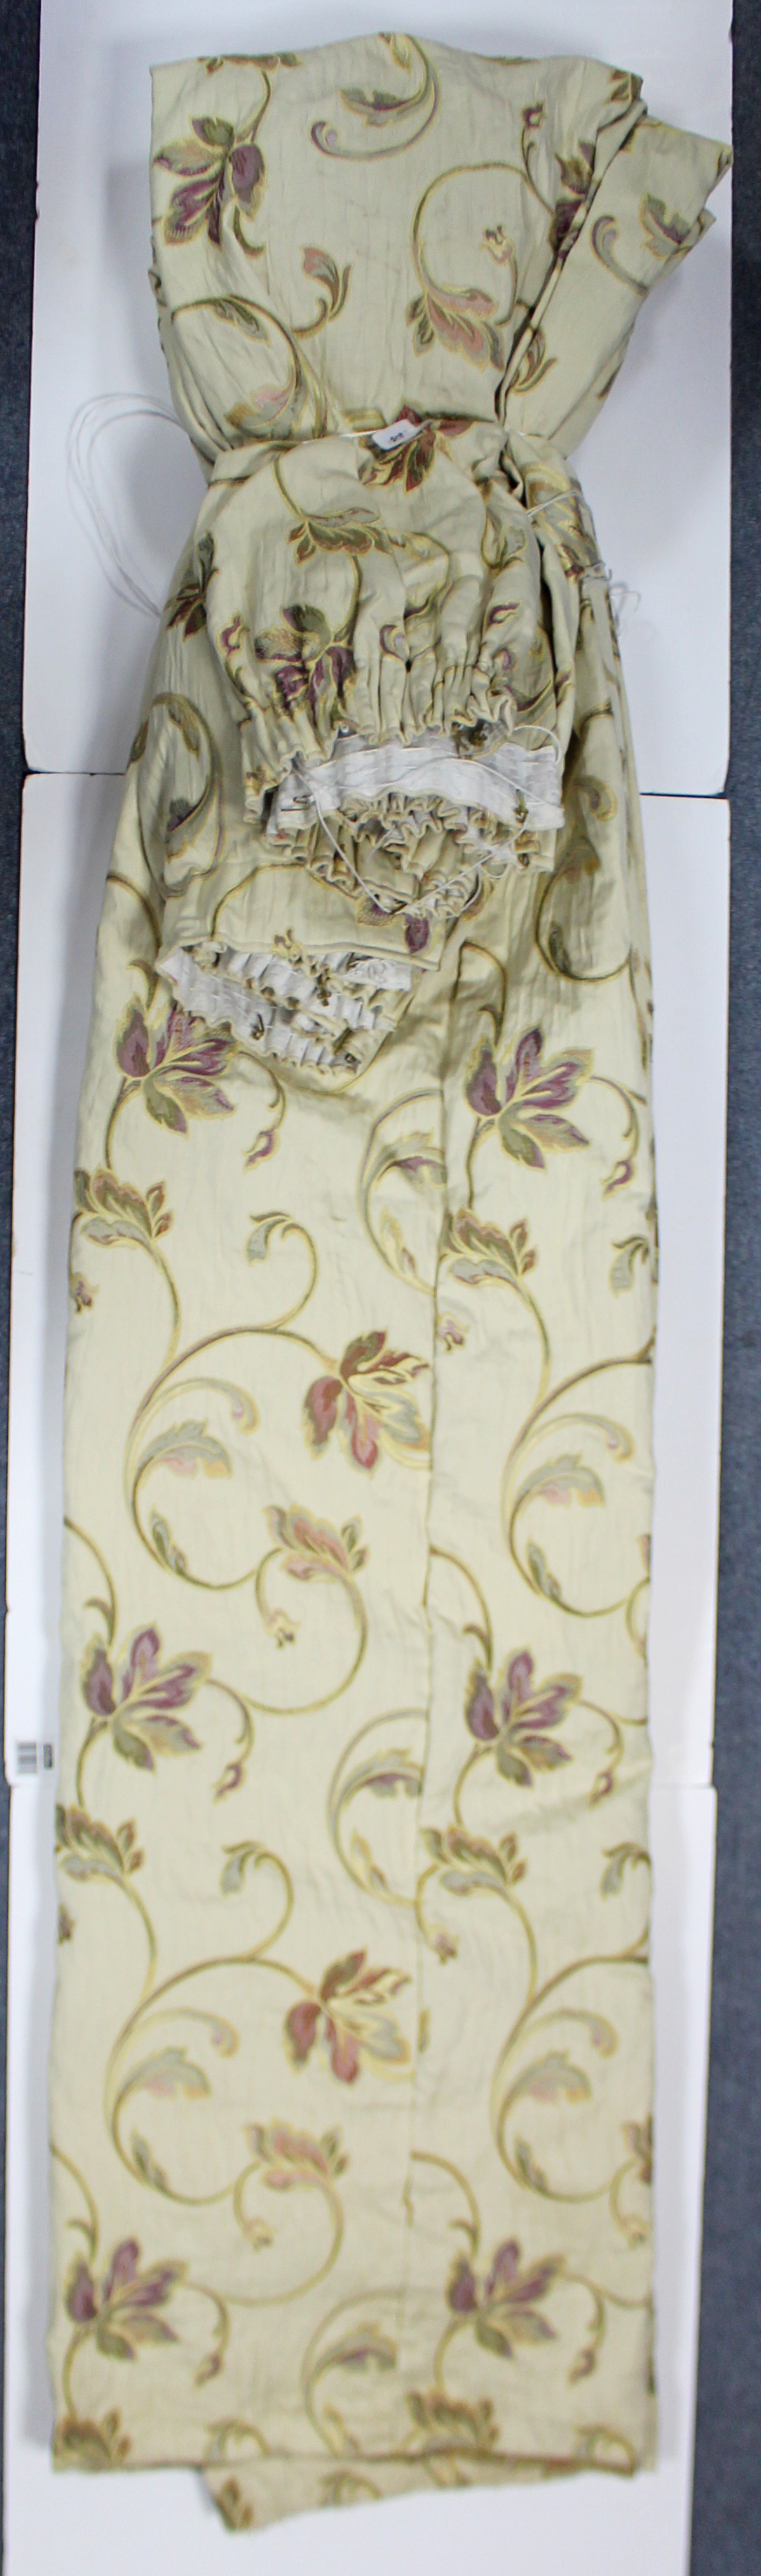 Lot 32 - A pair of lined & interlined curtains of cream ground, & with all-over repeating multi-coloured